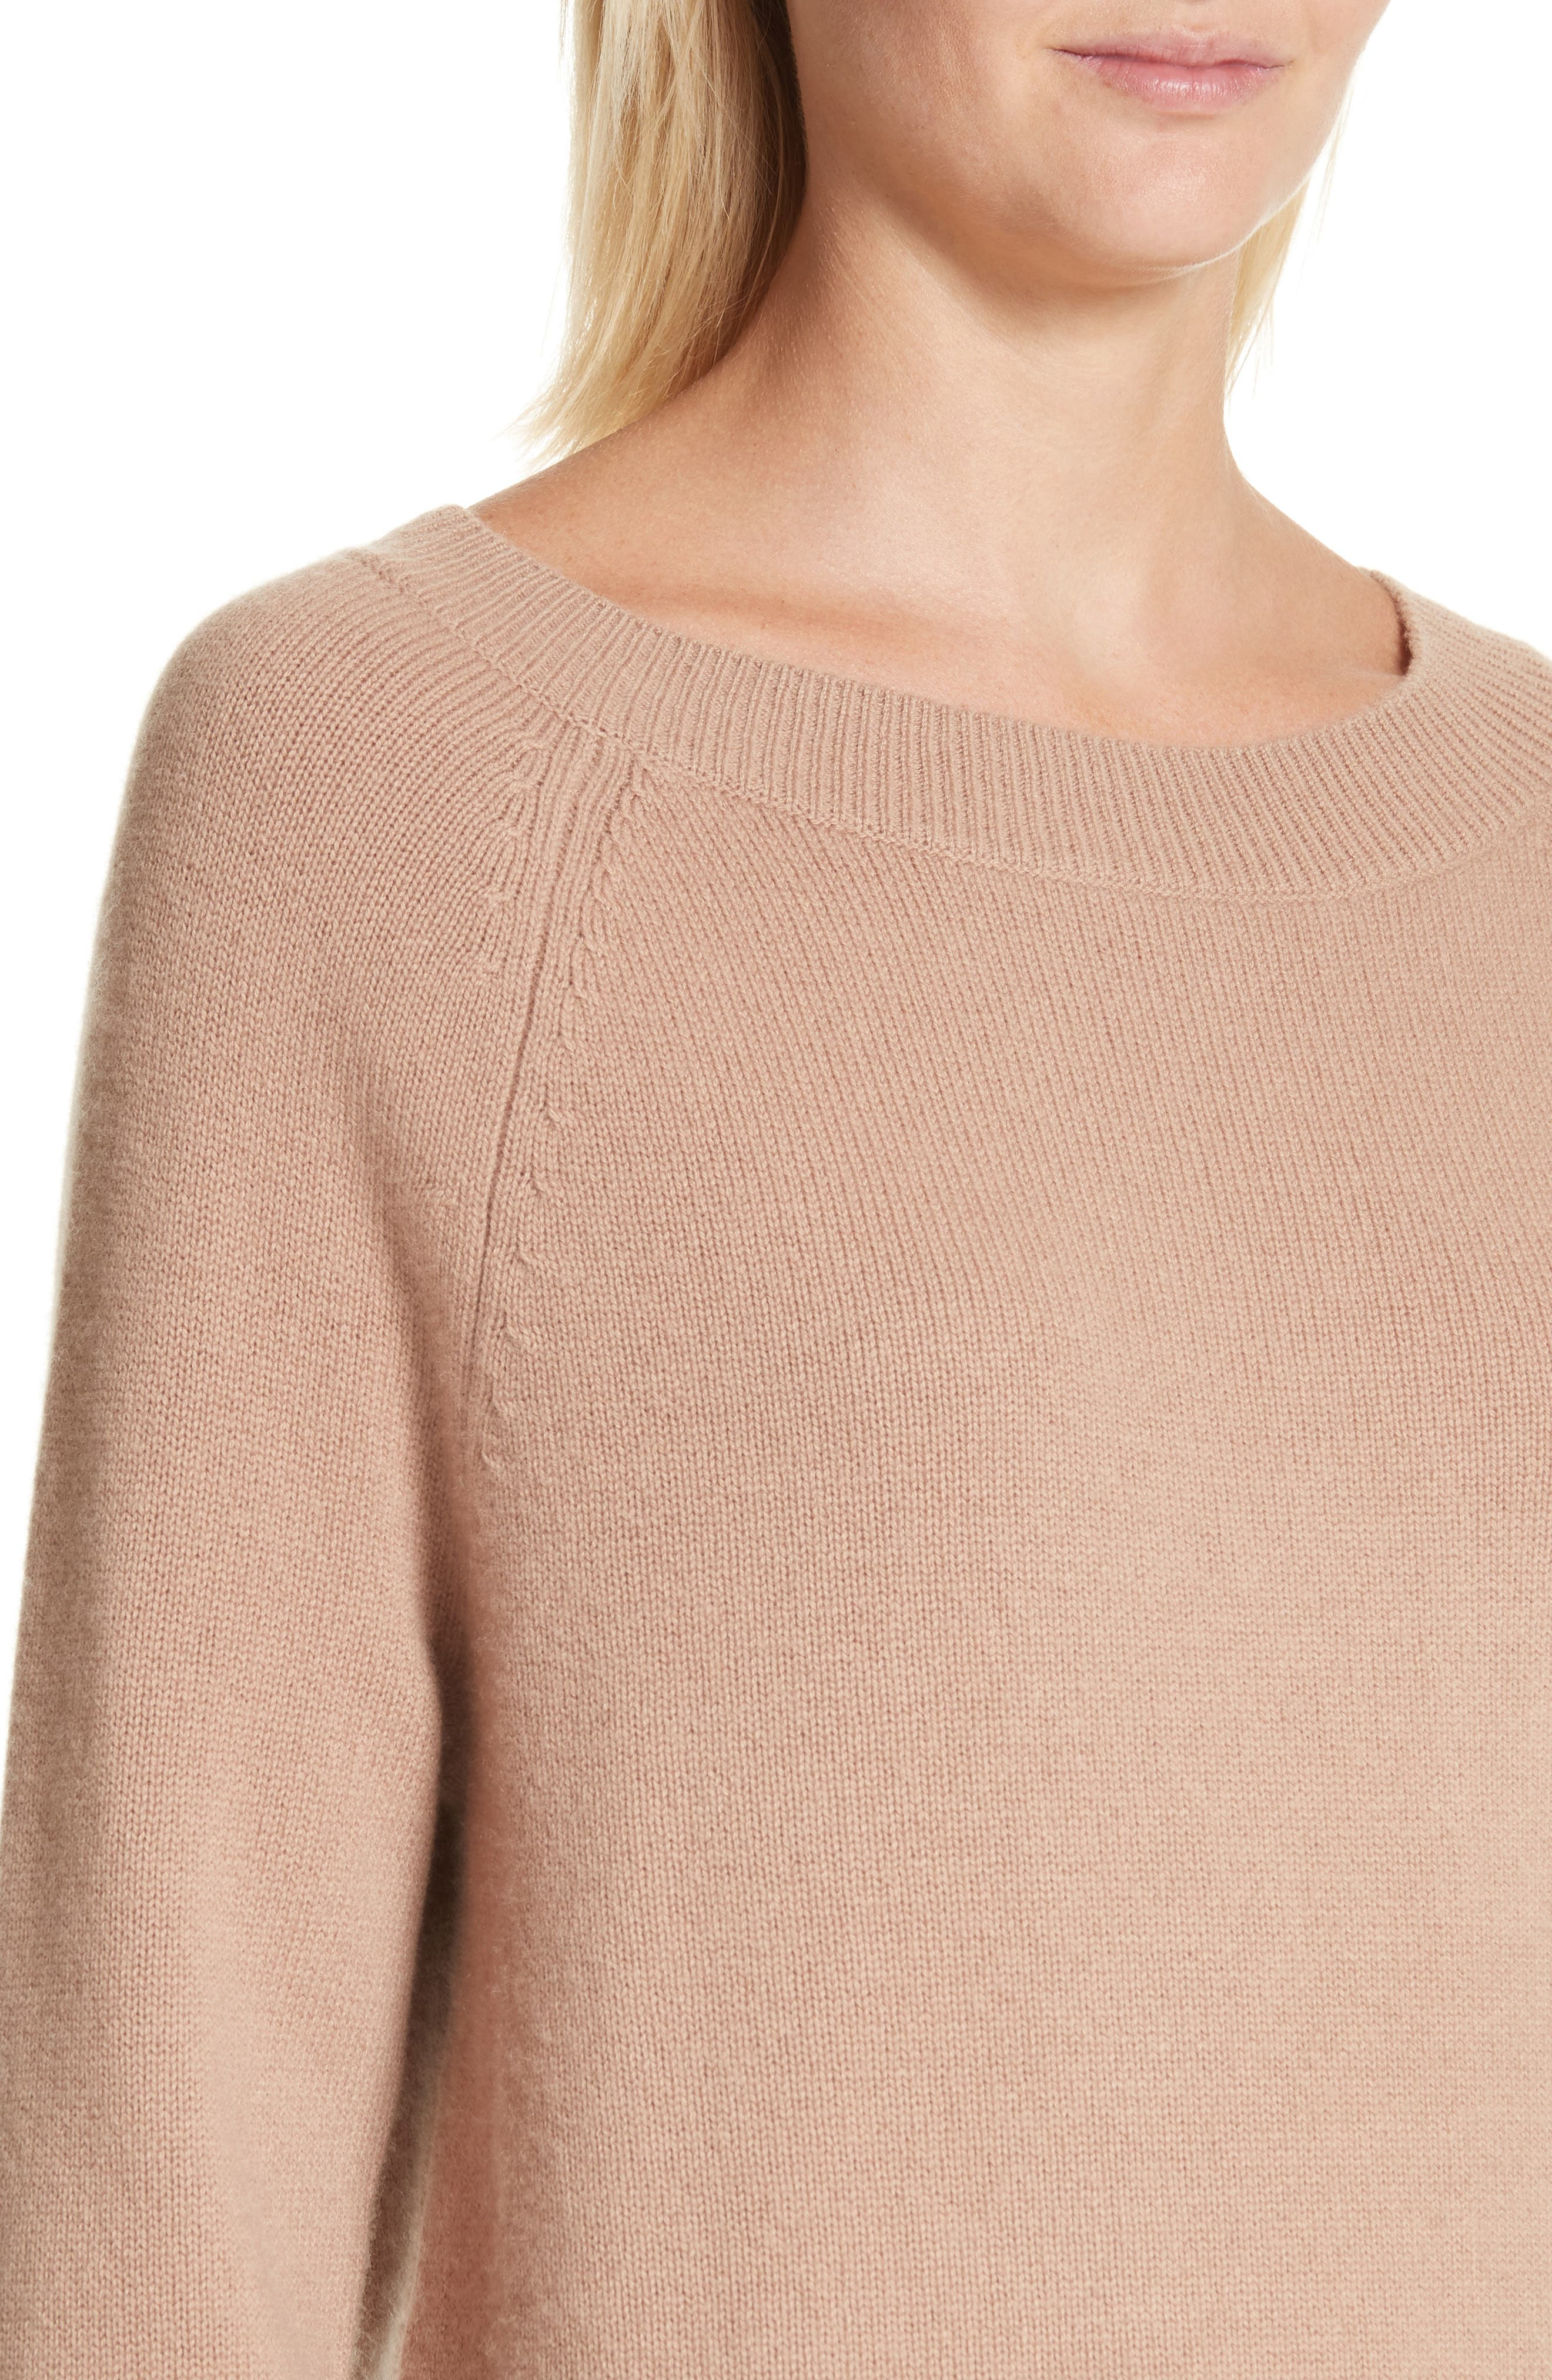 Cody Wool & Cashmere Boatneck Sweater,                             Alternate thumbnail 4, color,                             Camel